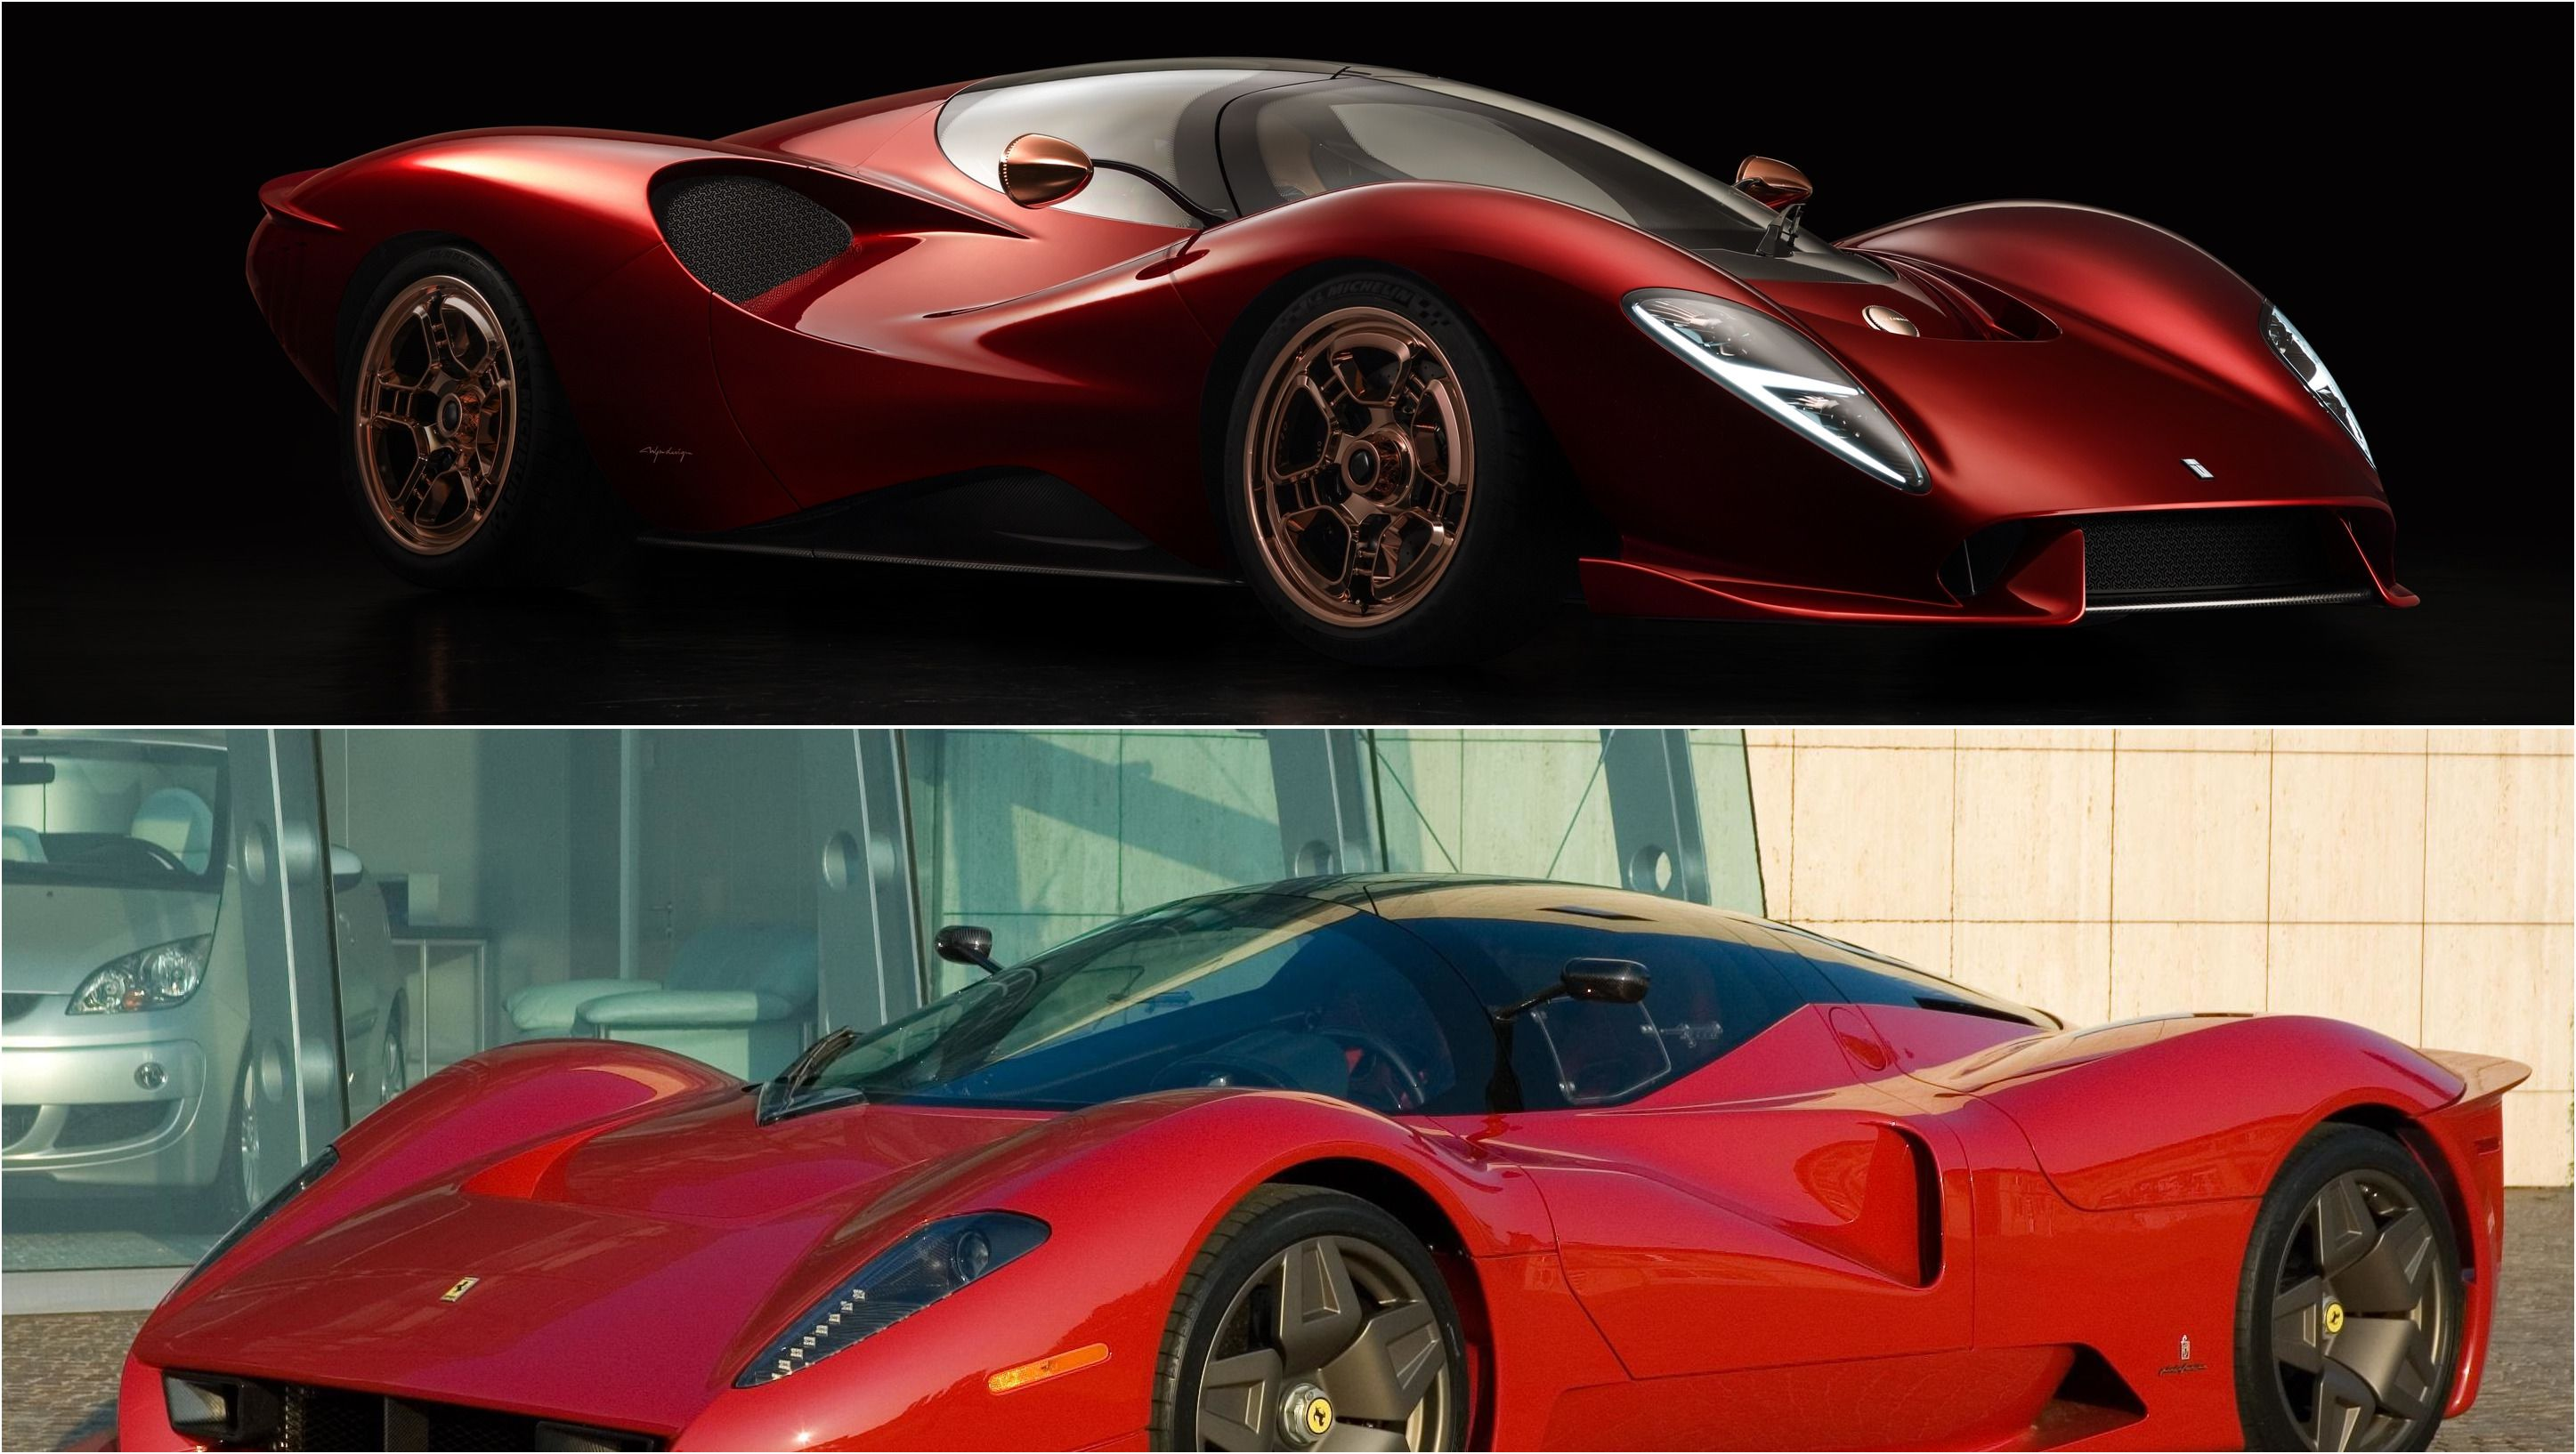 2020 De Tomaso P72 Versus 2005 Scg P4 5 Ferrari Racing New Cars Historic Racing